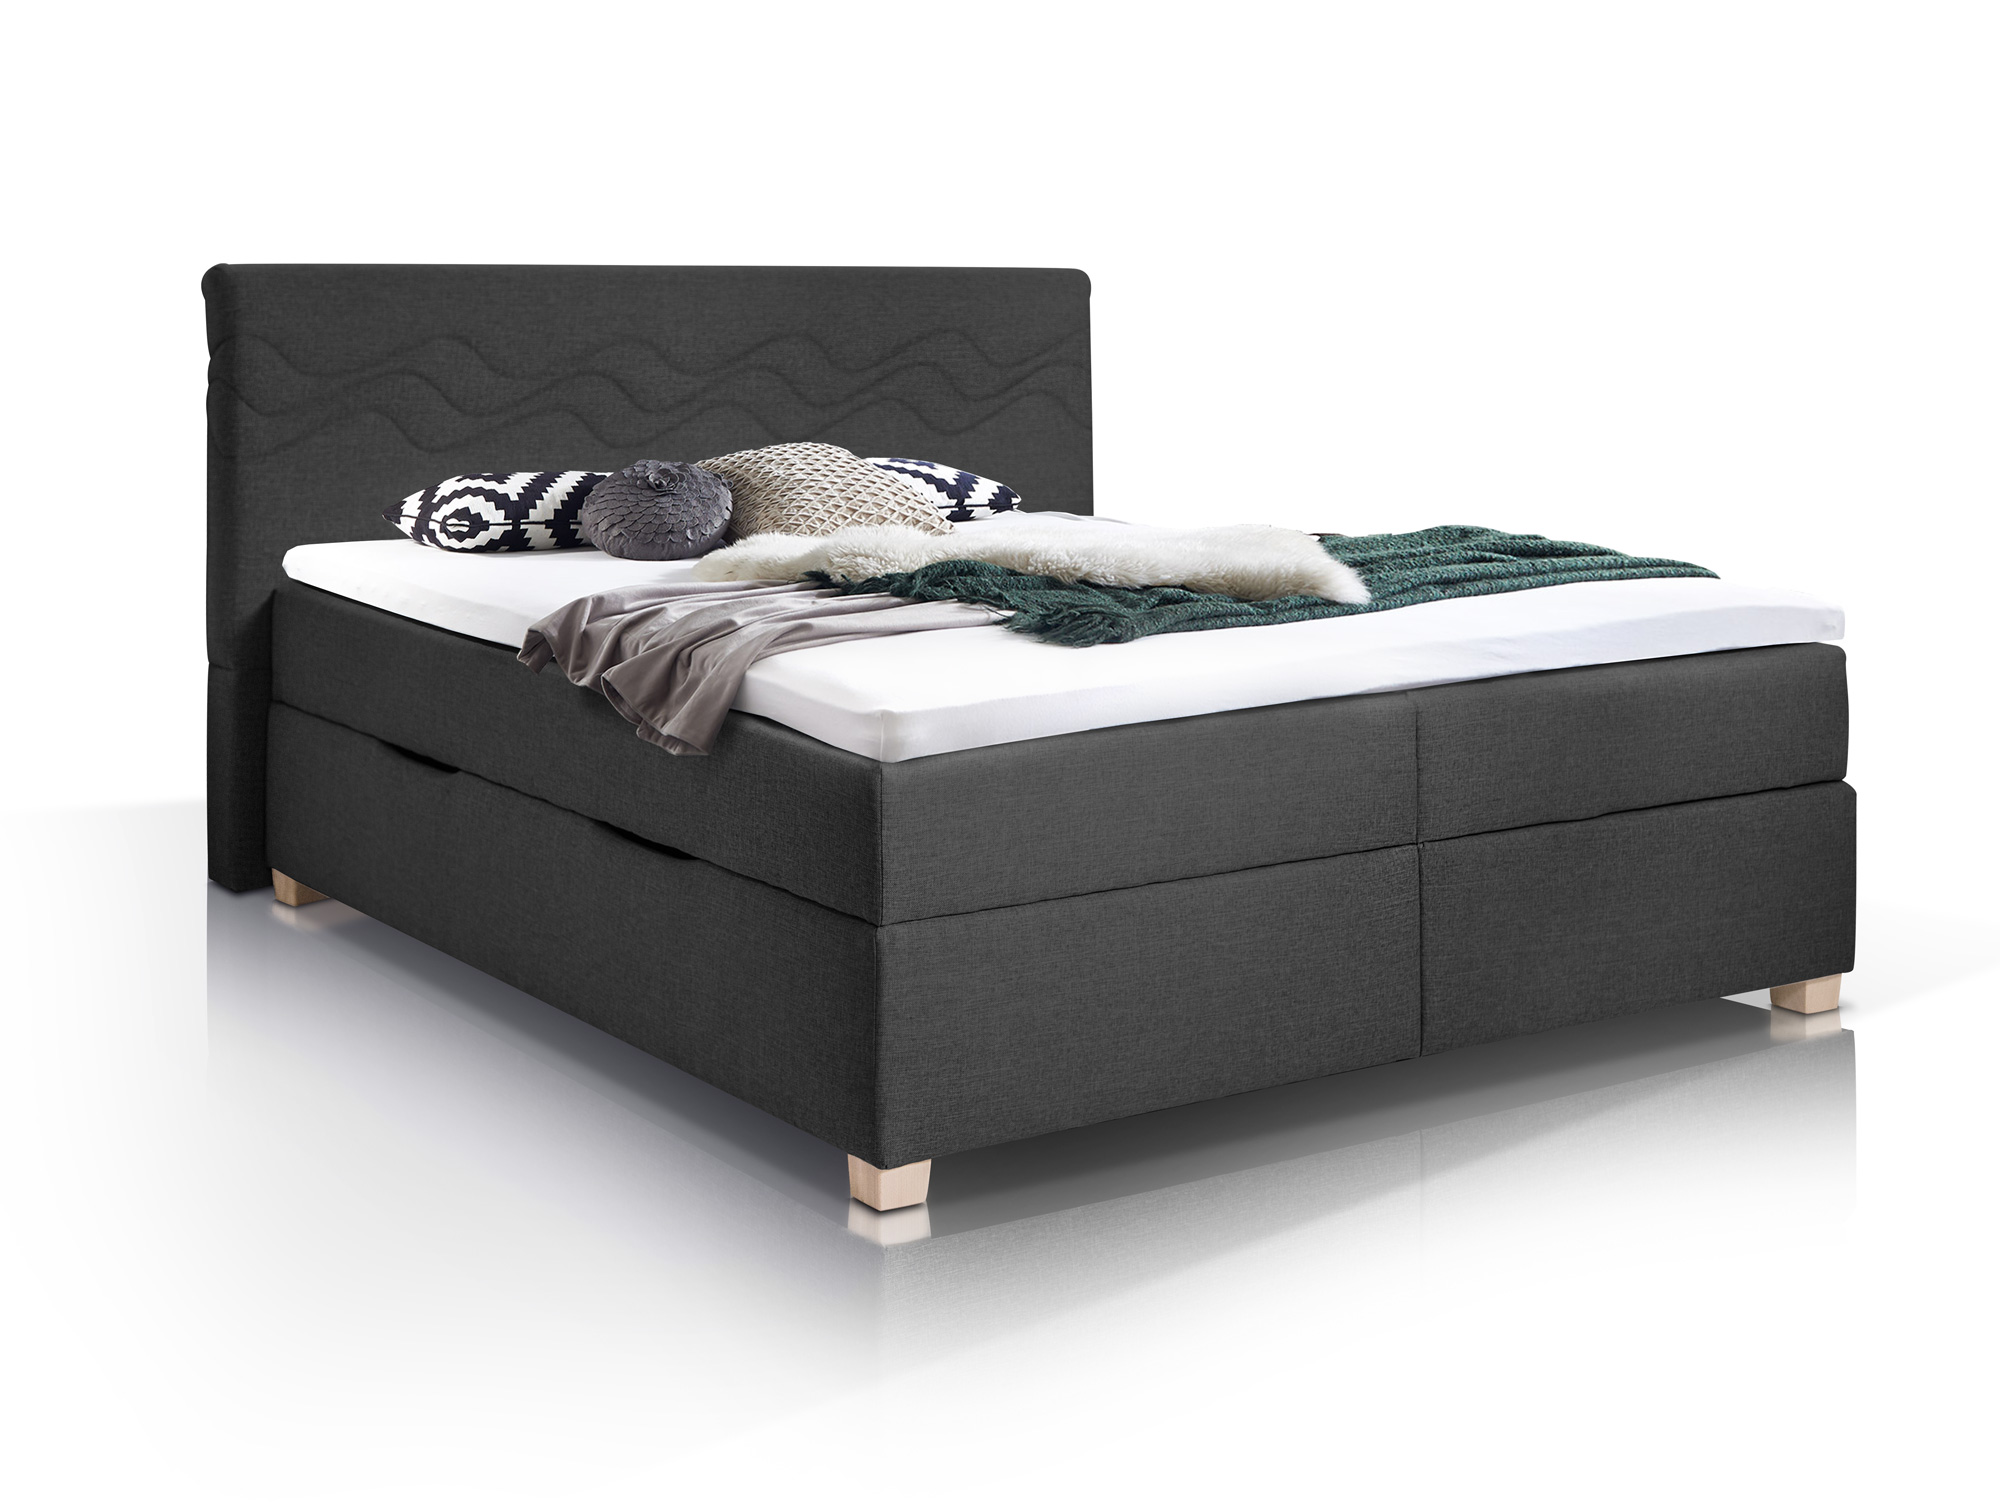 wave boxspringbett mit stoffbezug inklusive bettkasten 180 x 200 cm anthrazit h rtegrad 3. Black Bedroom Furniture Sets. Home Design Ideas